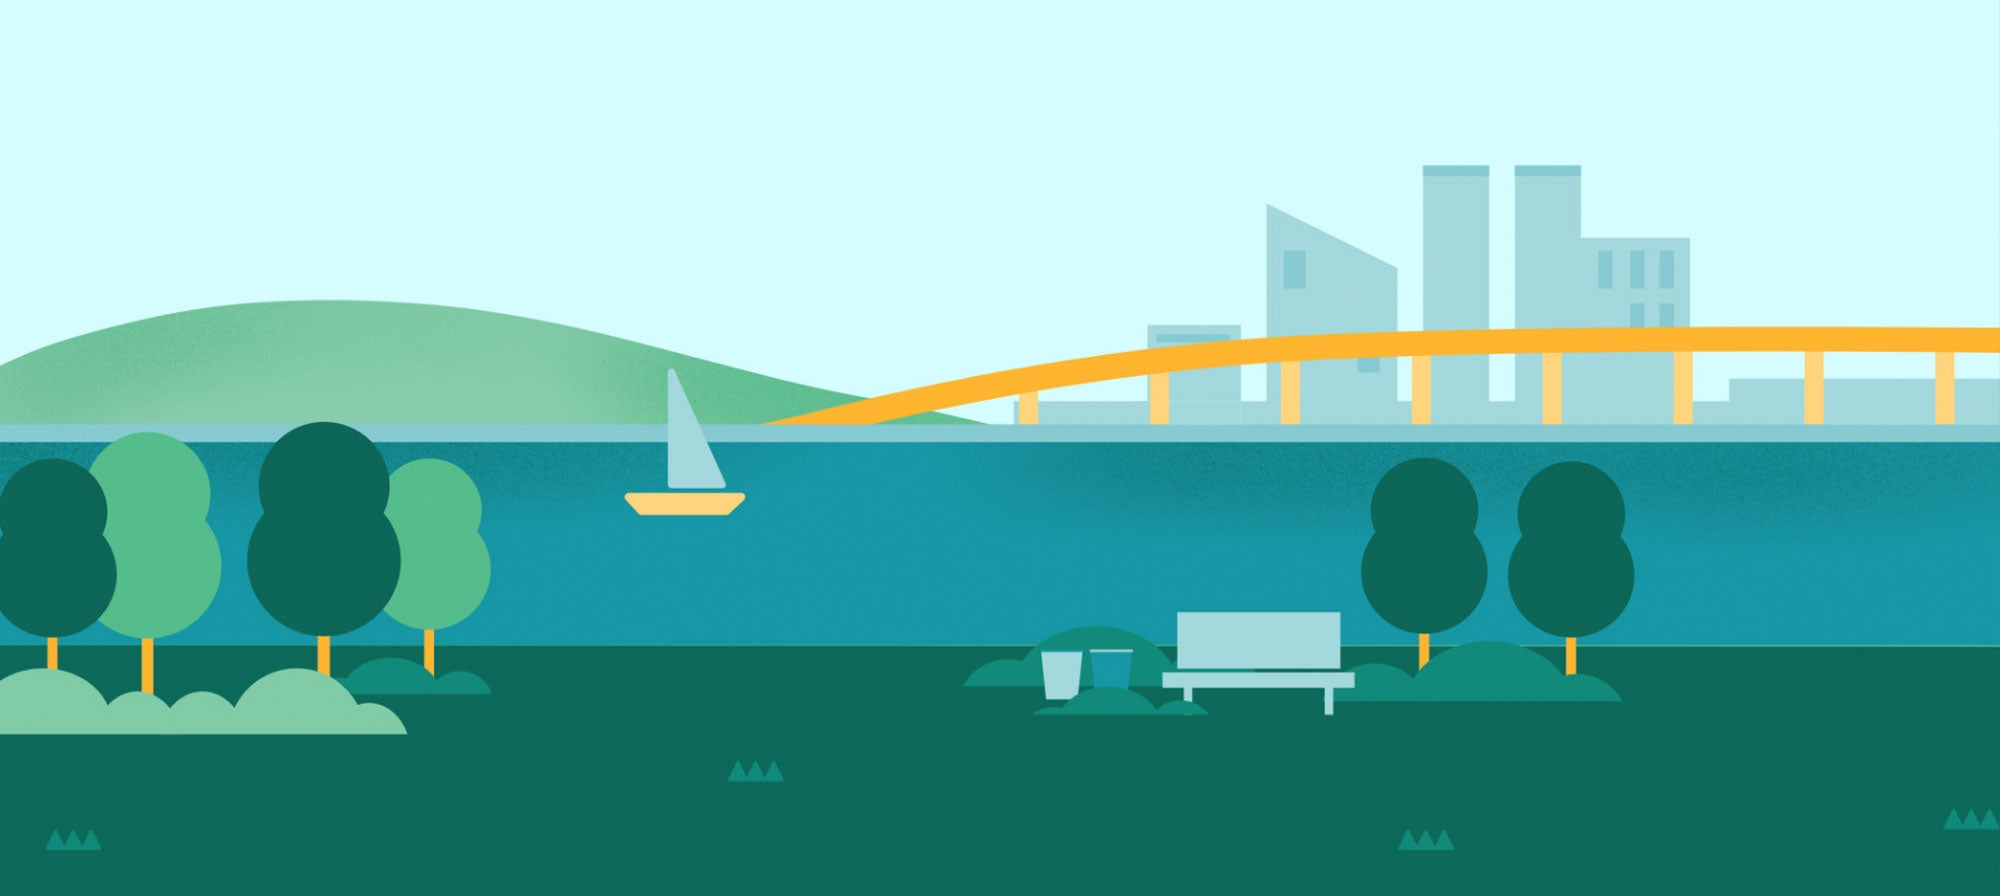 graphic image of the San Francisco Bay and a skyline of buildings